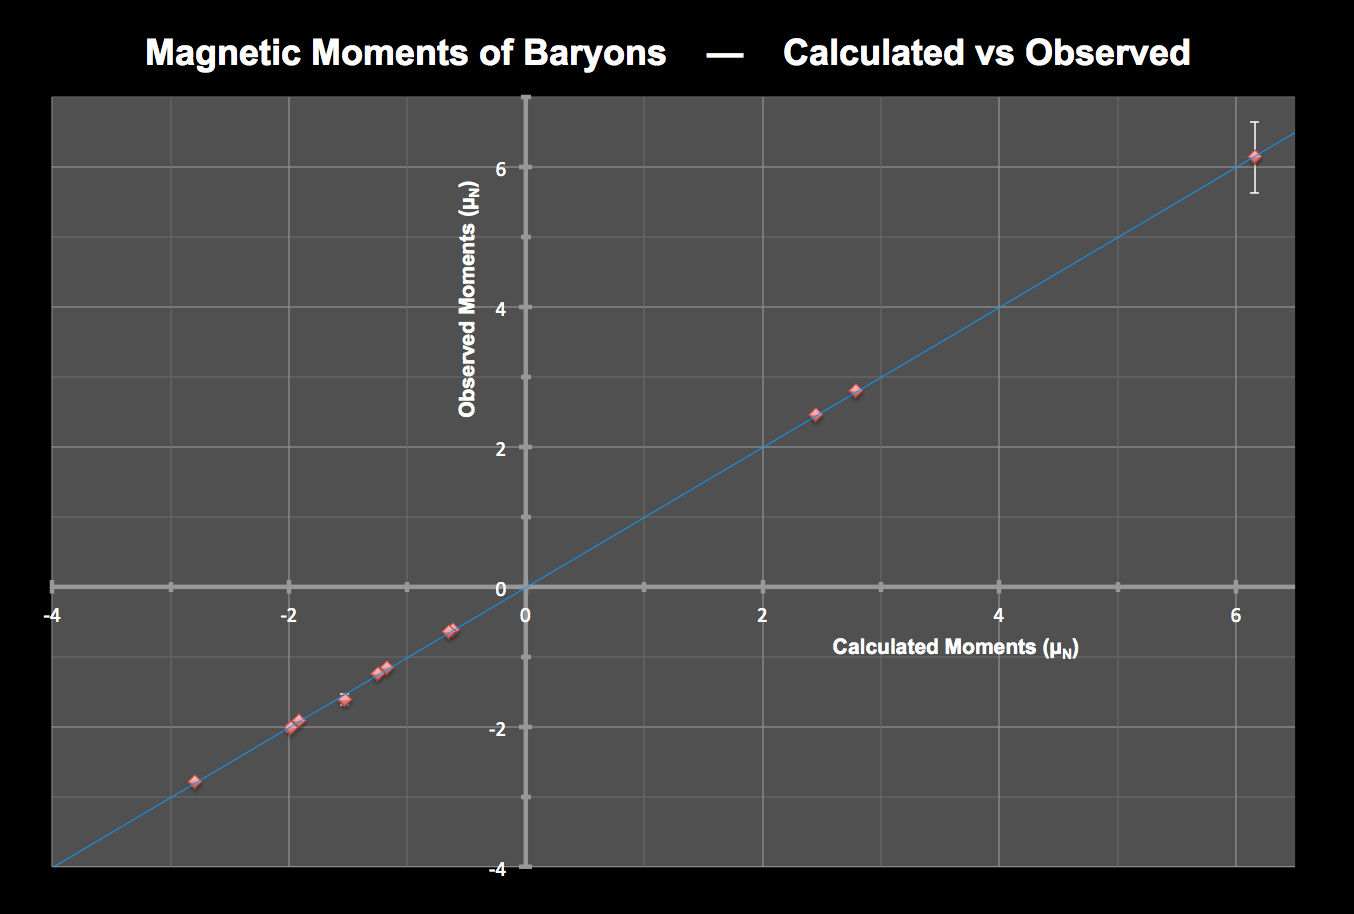 A comparison of calculated and observed magnetic moments for baryons. The electron and muon are far off the scale of this graph, but the moments of both particles are within experimental error as well.